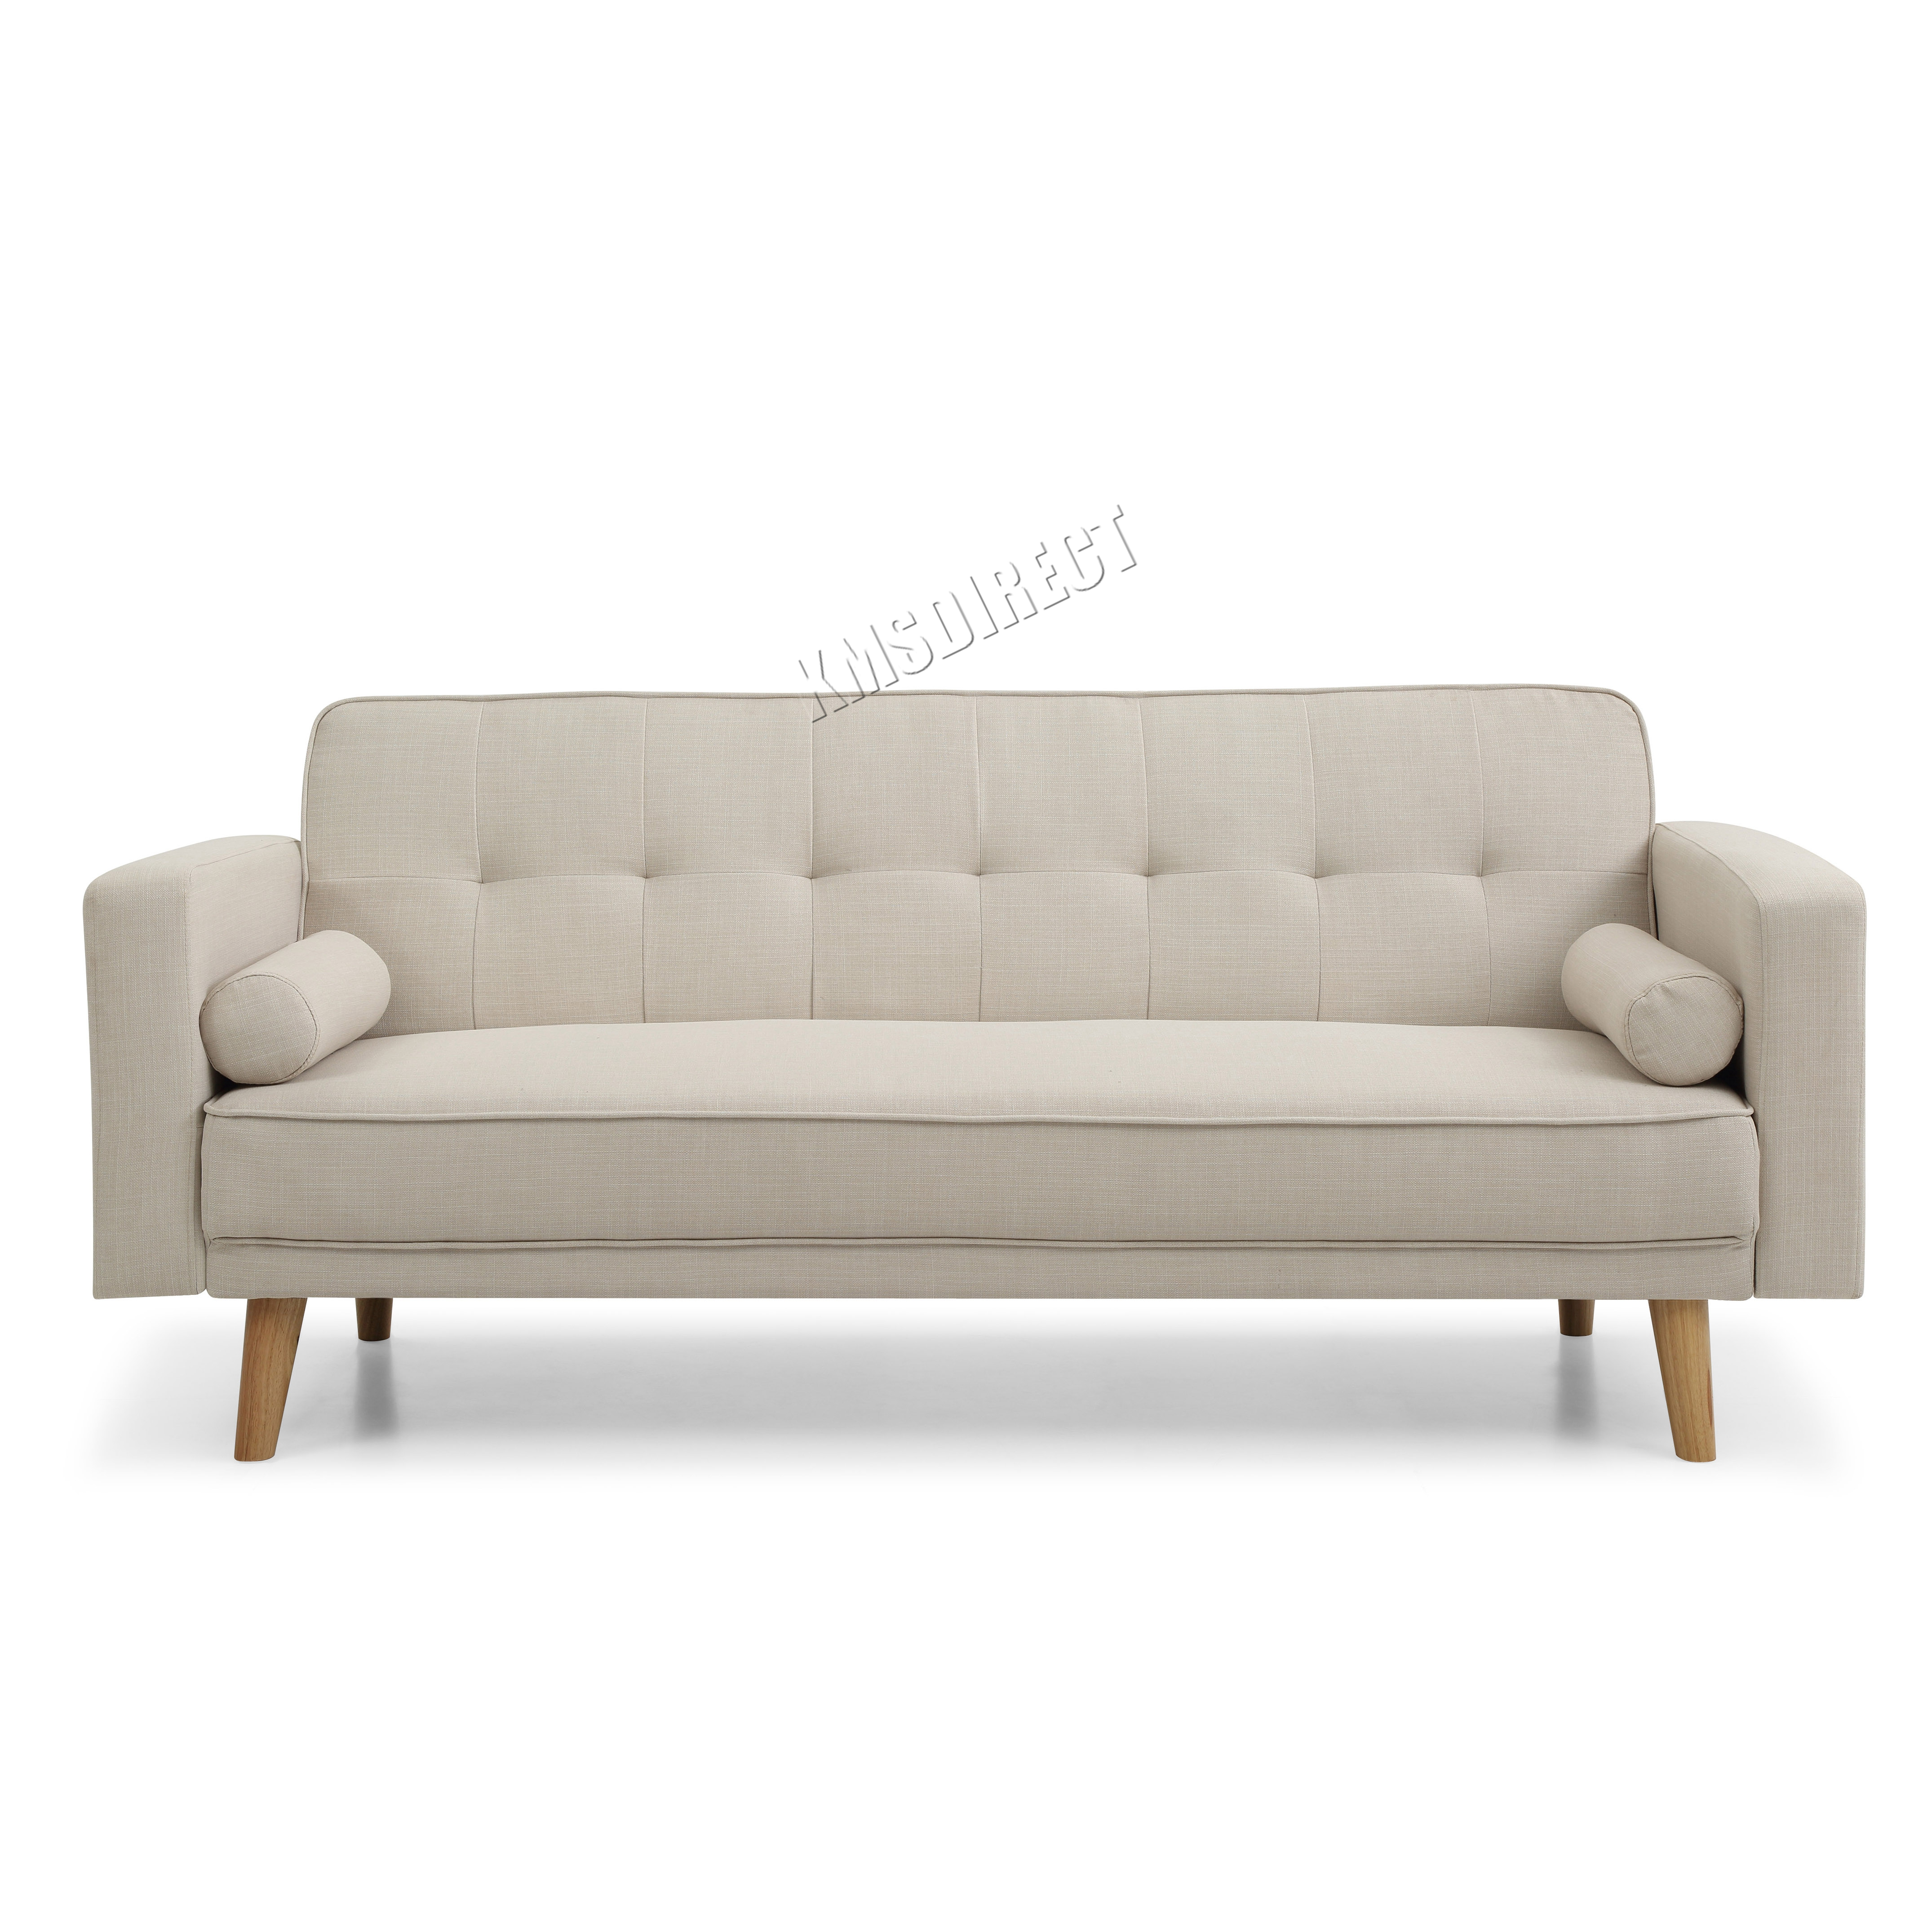 westwood fabric sofa bed 3 seater couch luxury modern home